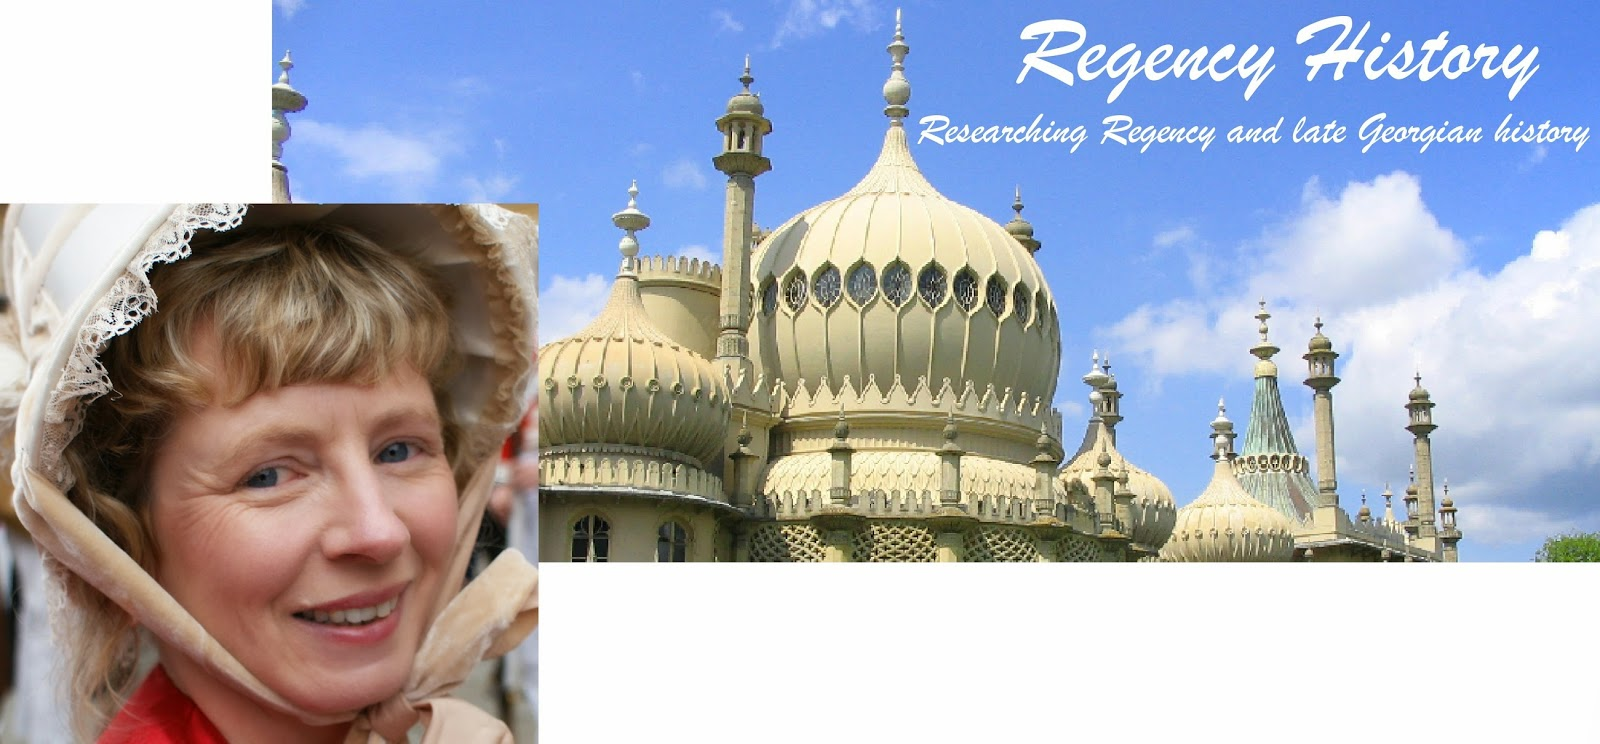 Regency History blog header and picture of Rachel Knowles, author